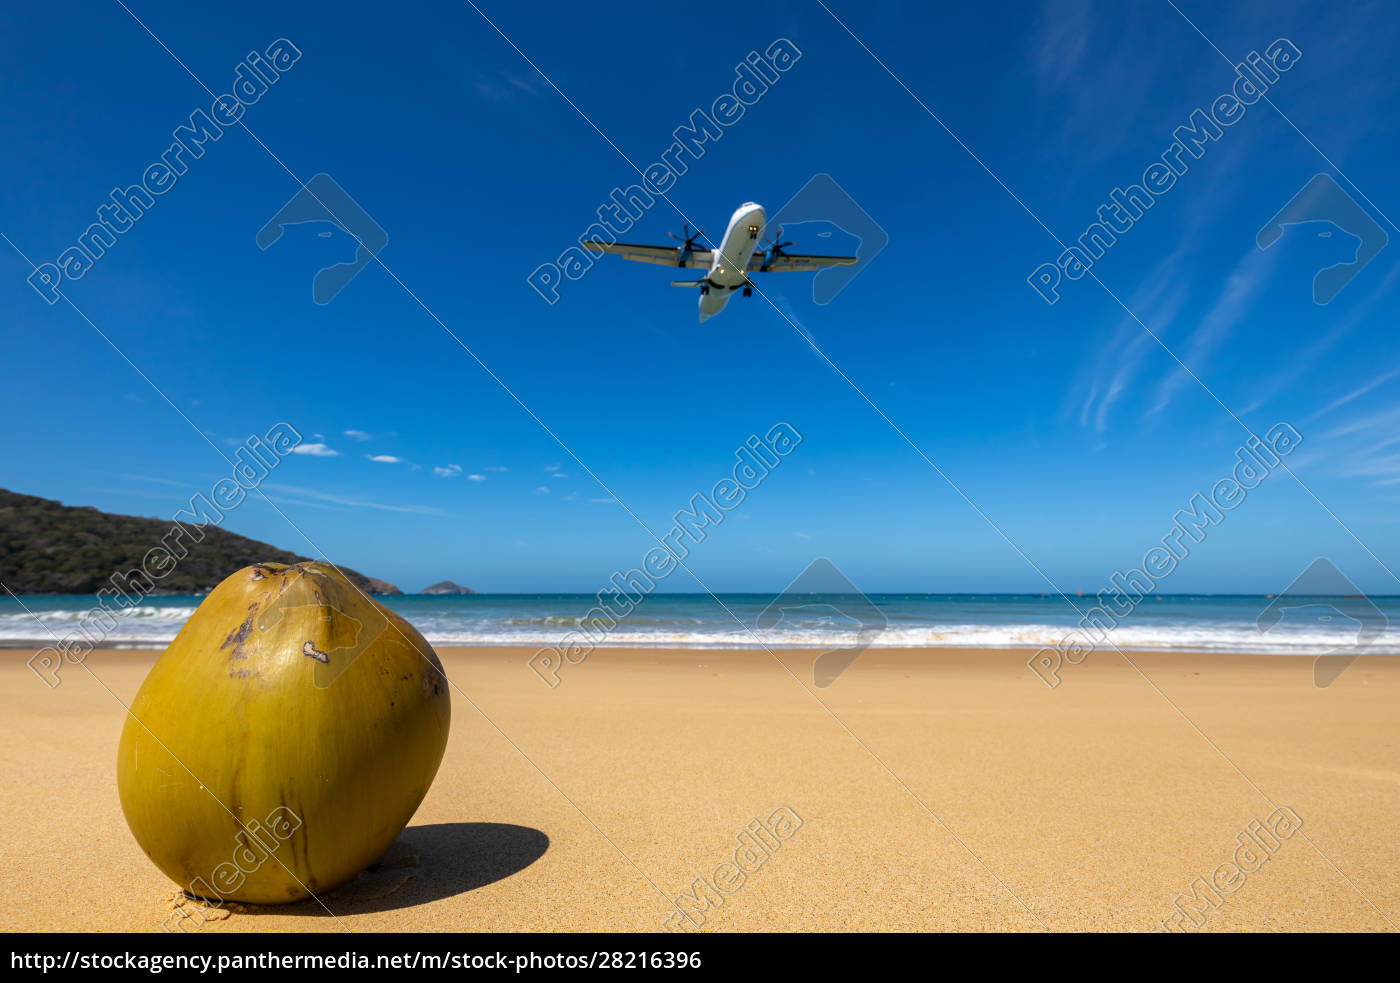 airplane, is, landing, on, con, dao - 28216396